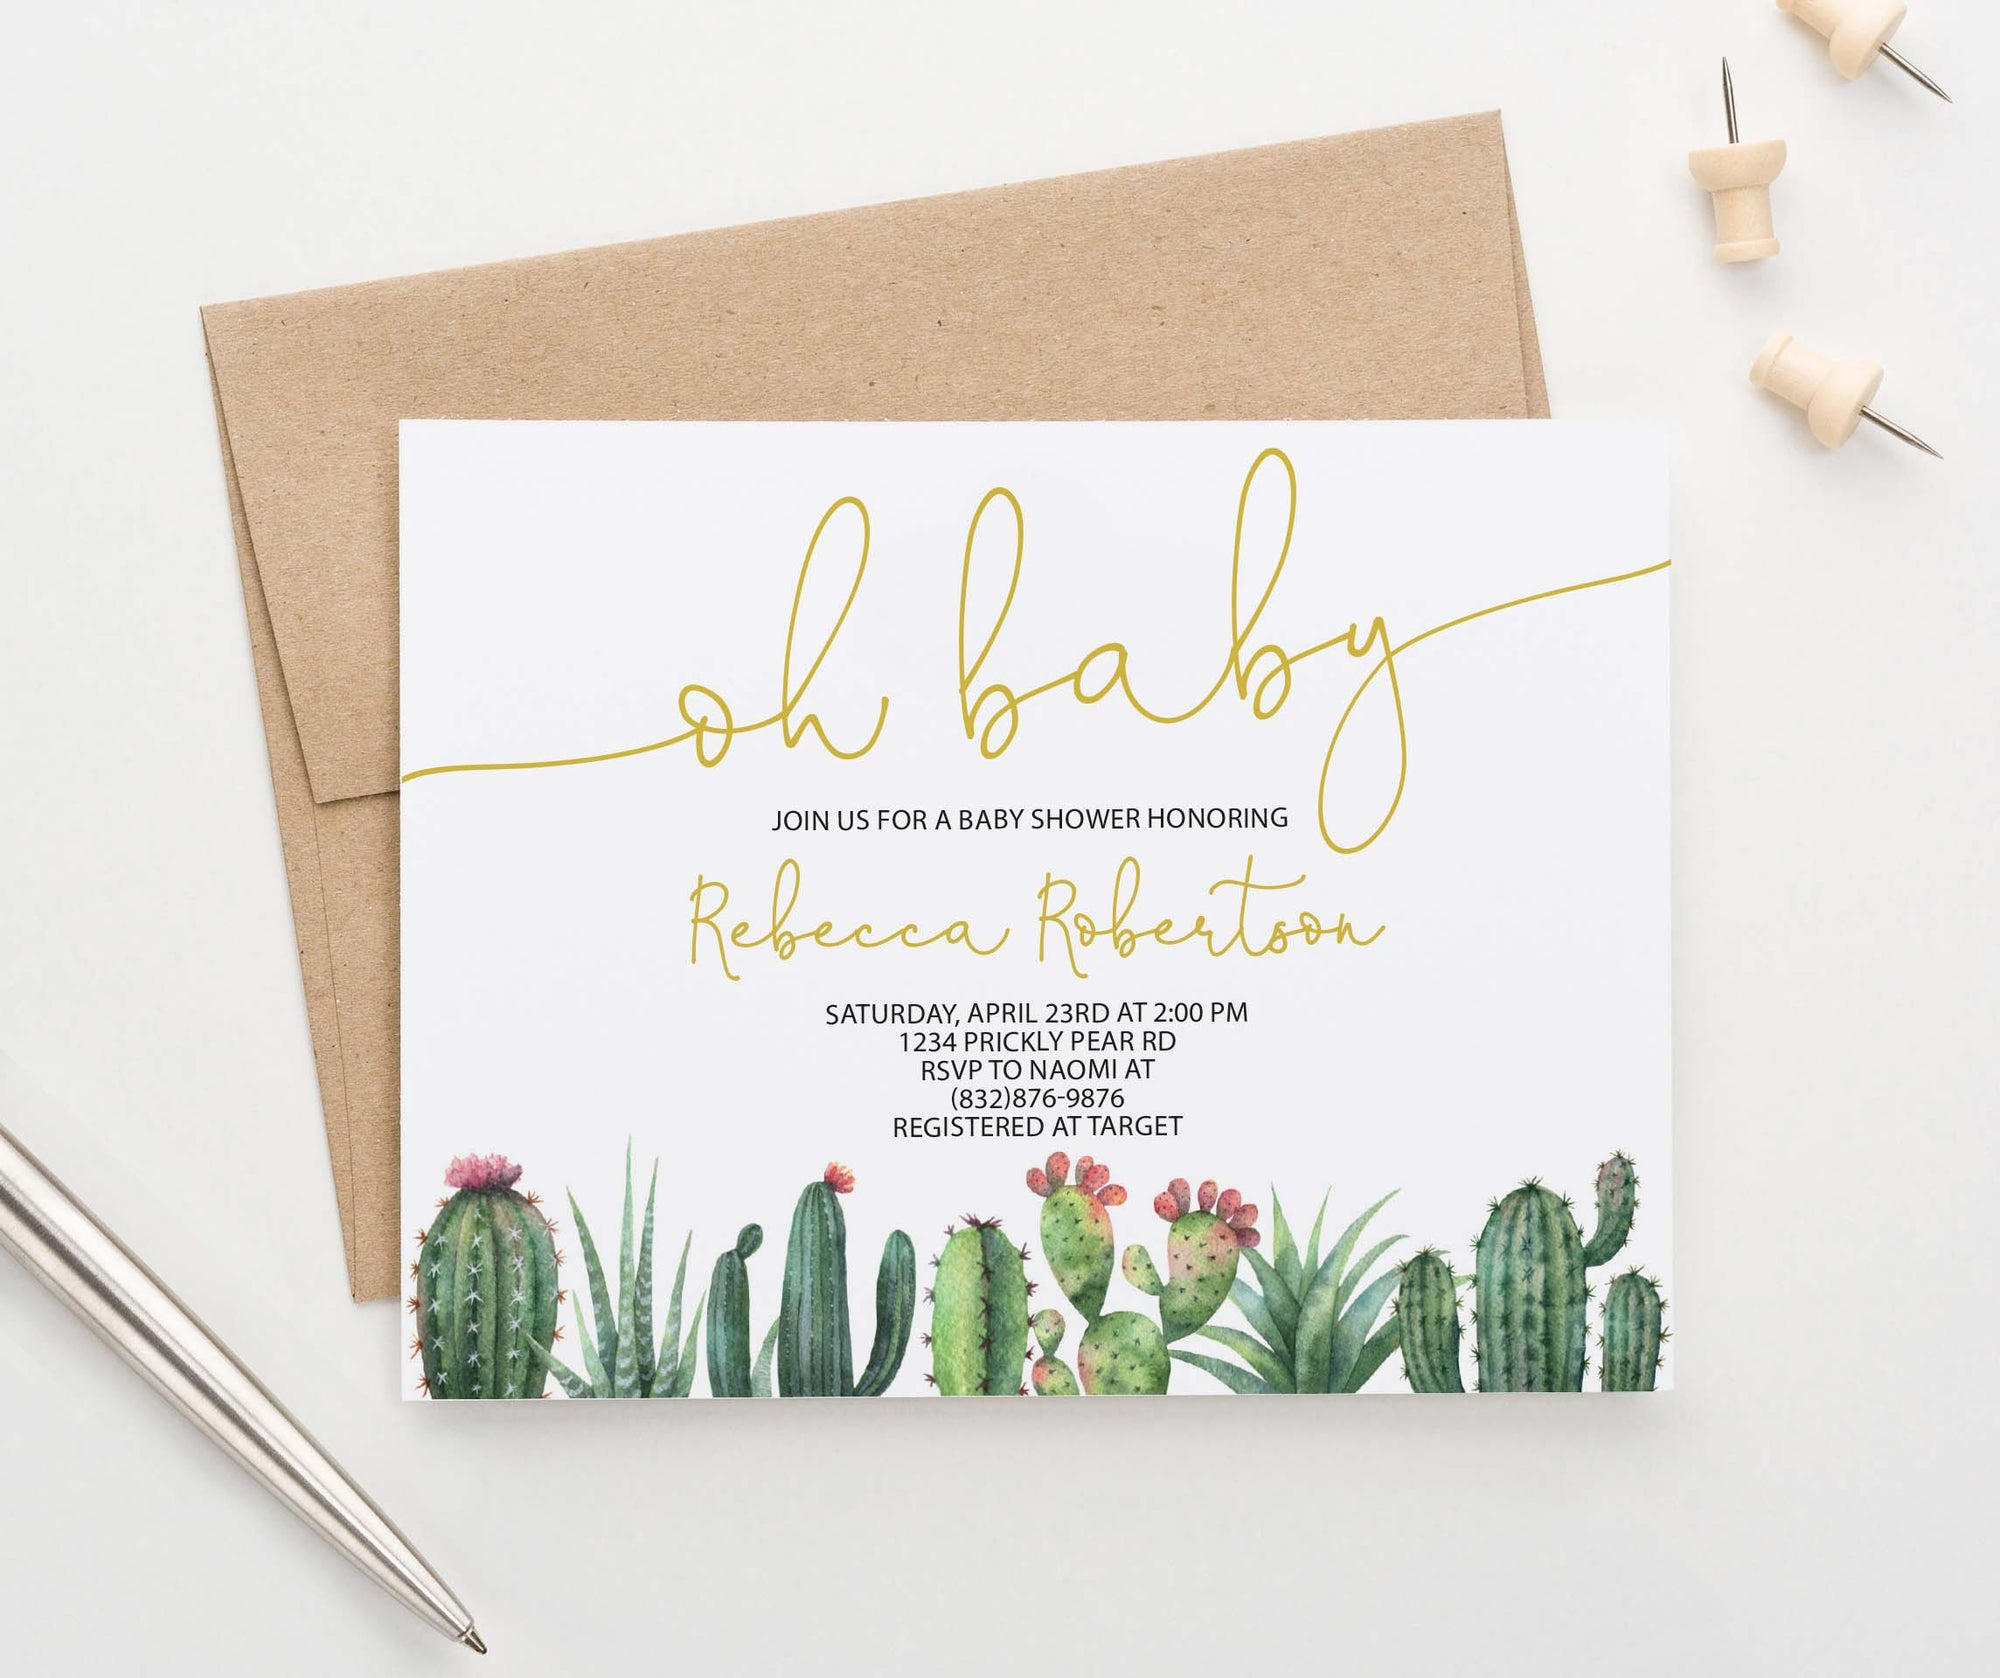 BSI080 oh baby baby shower invitation with bottom cactus fiesta succulents elegant